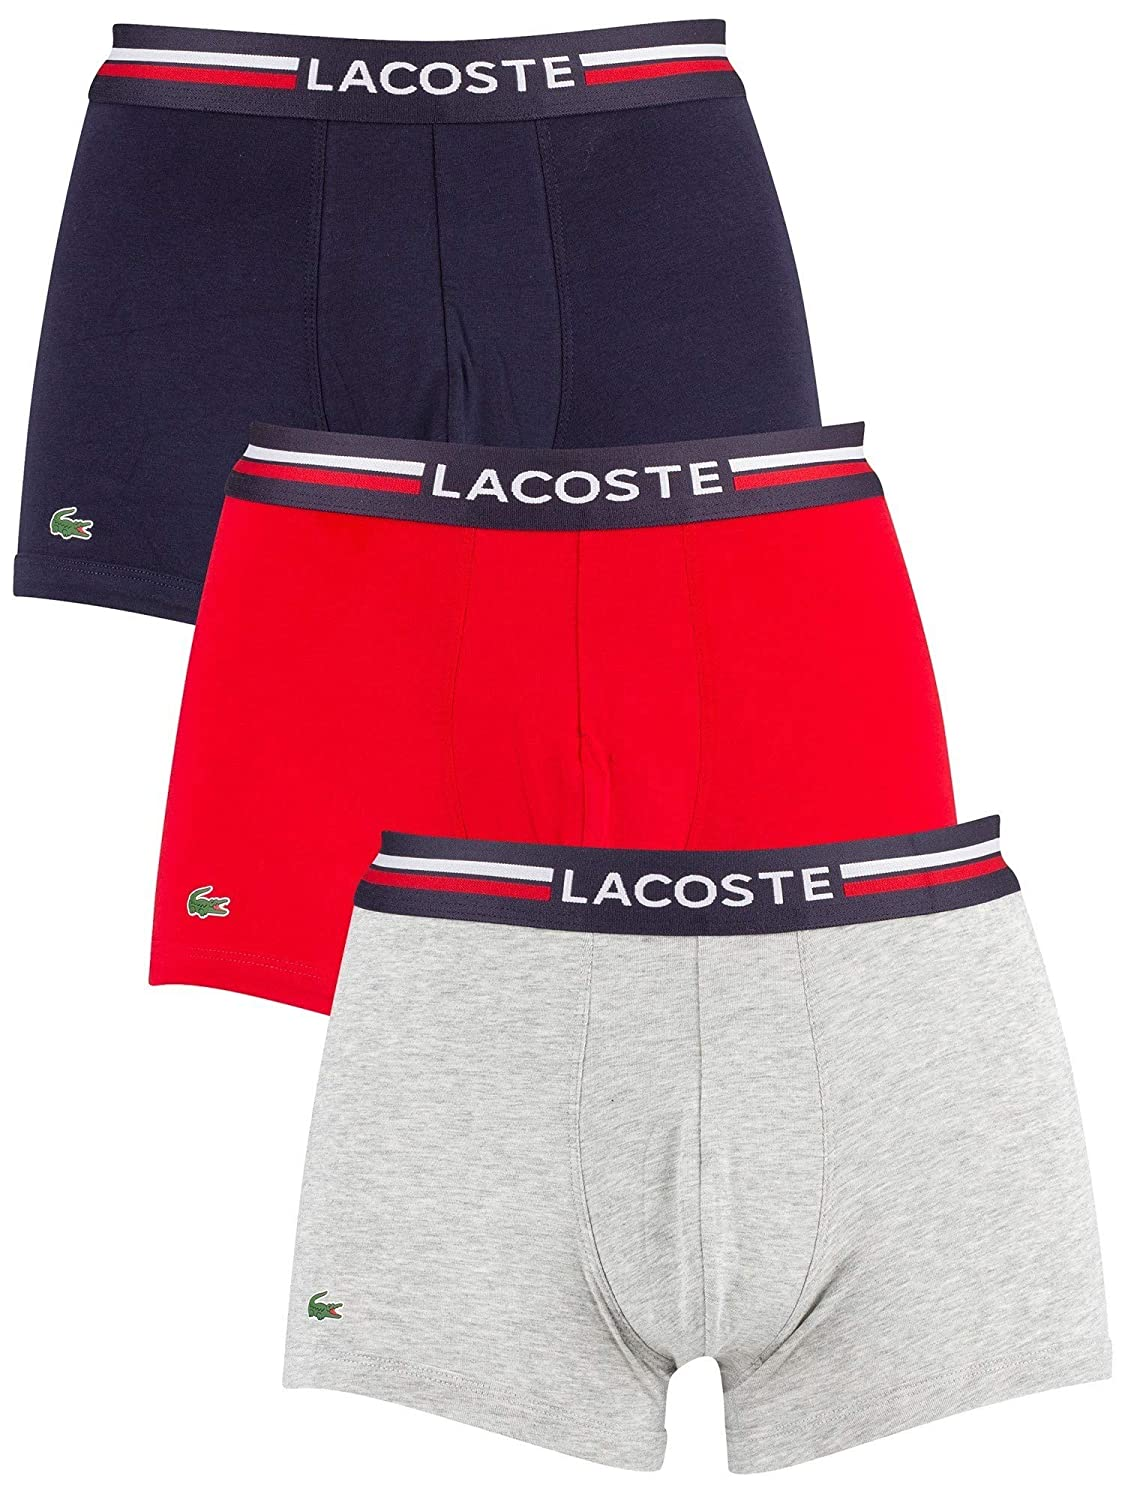 779544895c Lacoste Men's Boxer Shorts Pack of 3 - Colours, Cotton Stretch,  Navy/Red/Grey